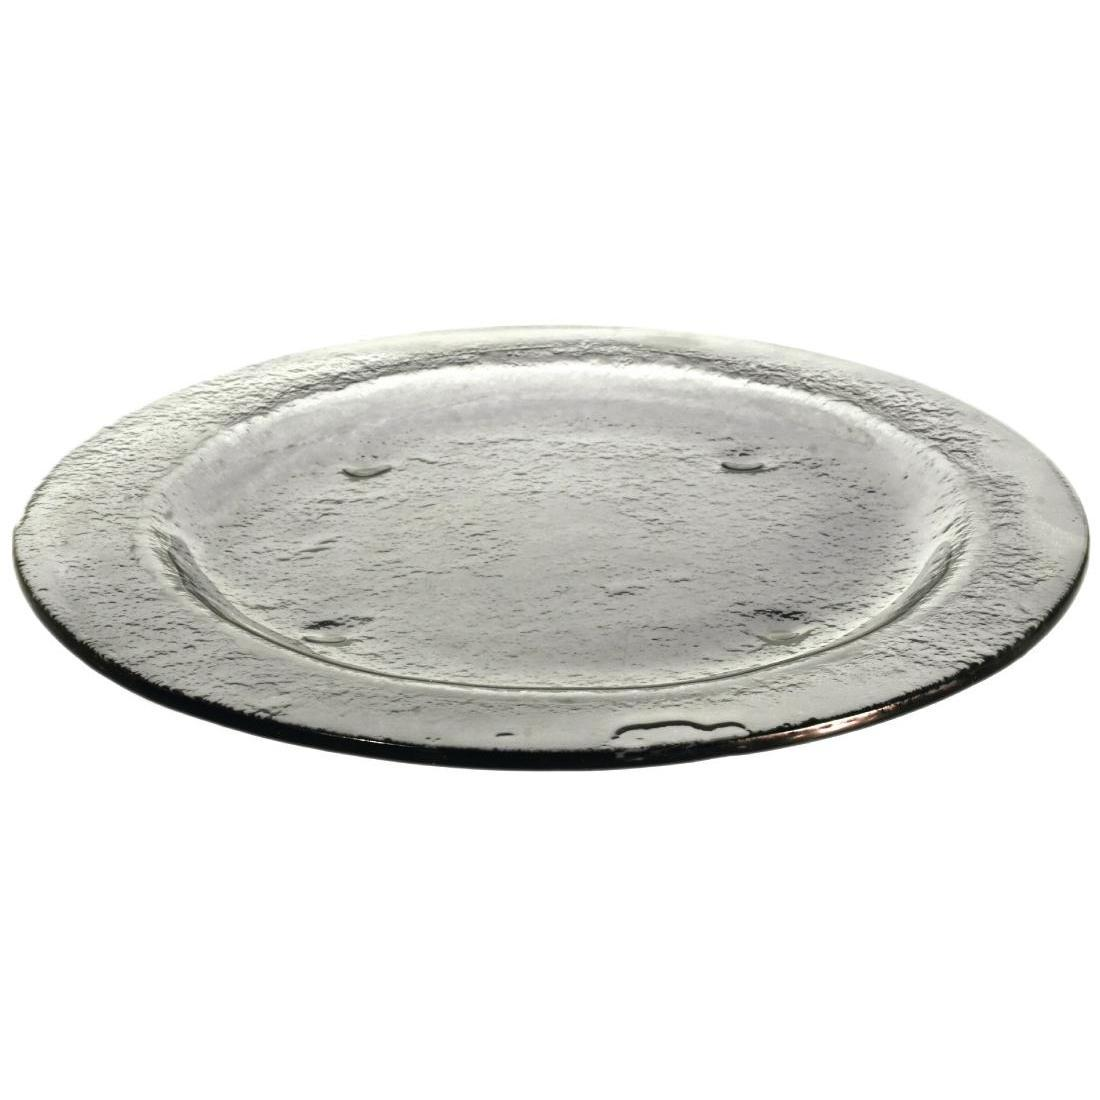 Olympia Round Glass Plates Smoke Grey 270mm